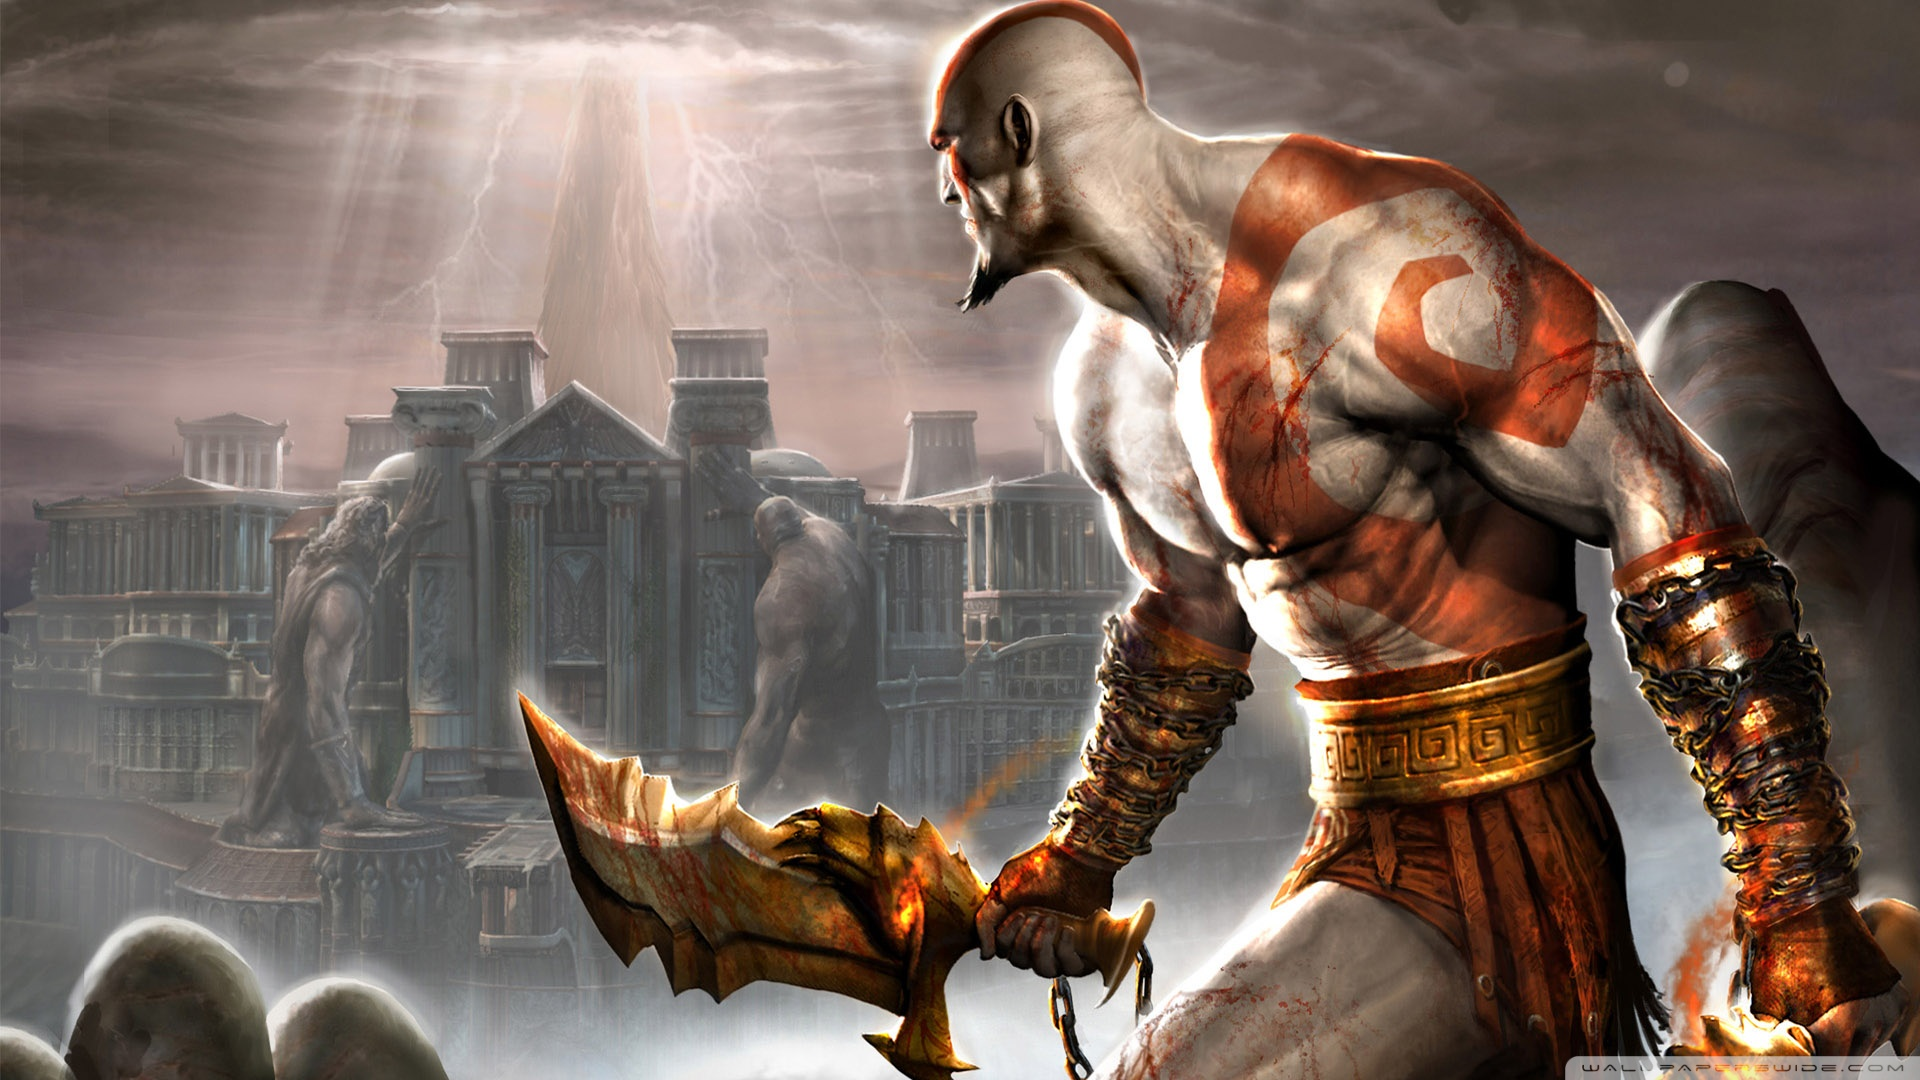 God Of War Wallpaper 1920x1080 Posted By John Anderson